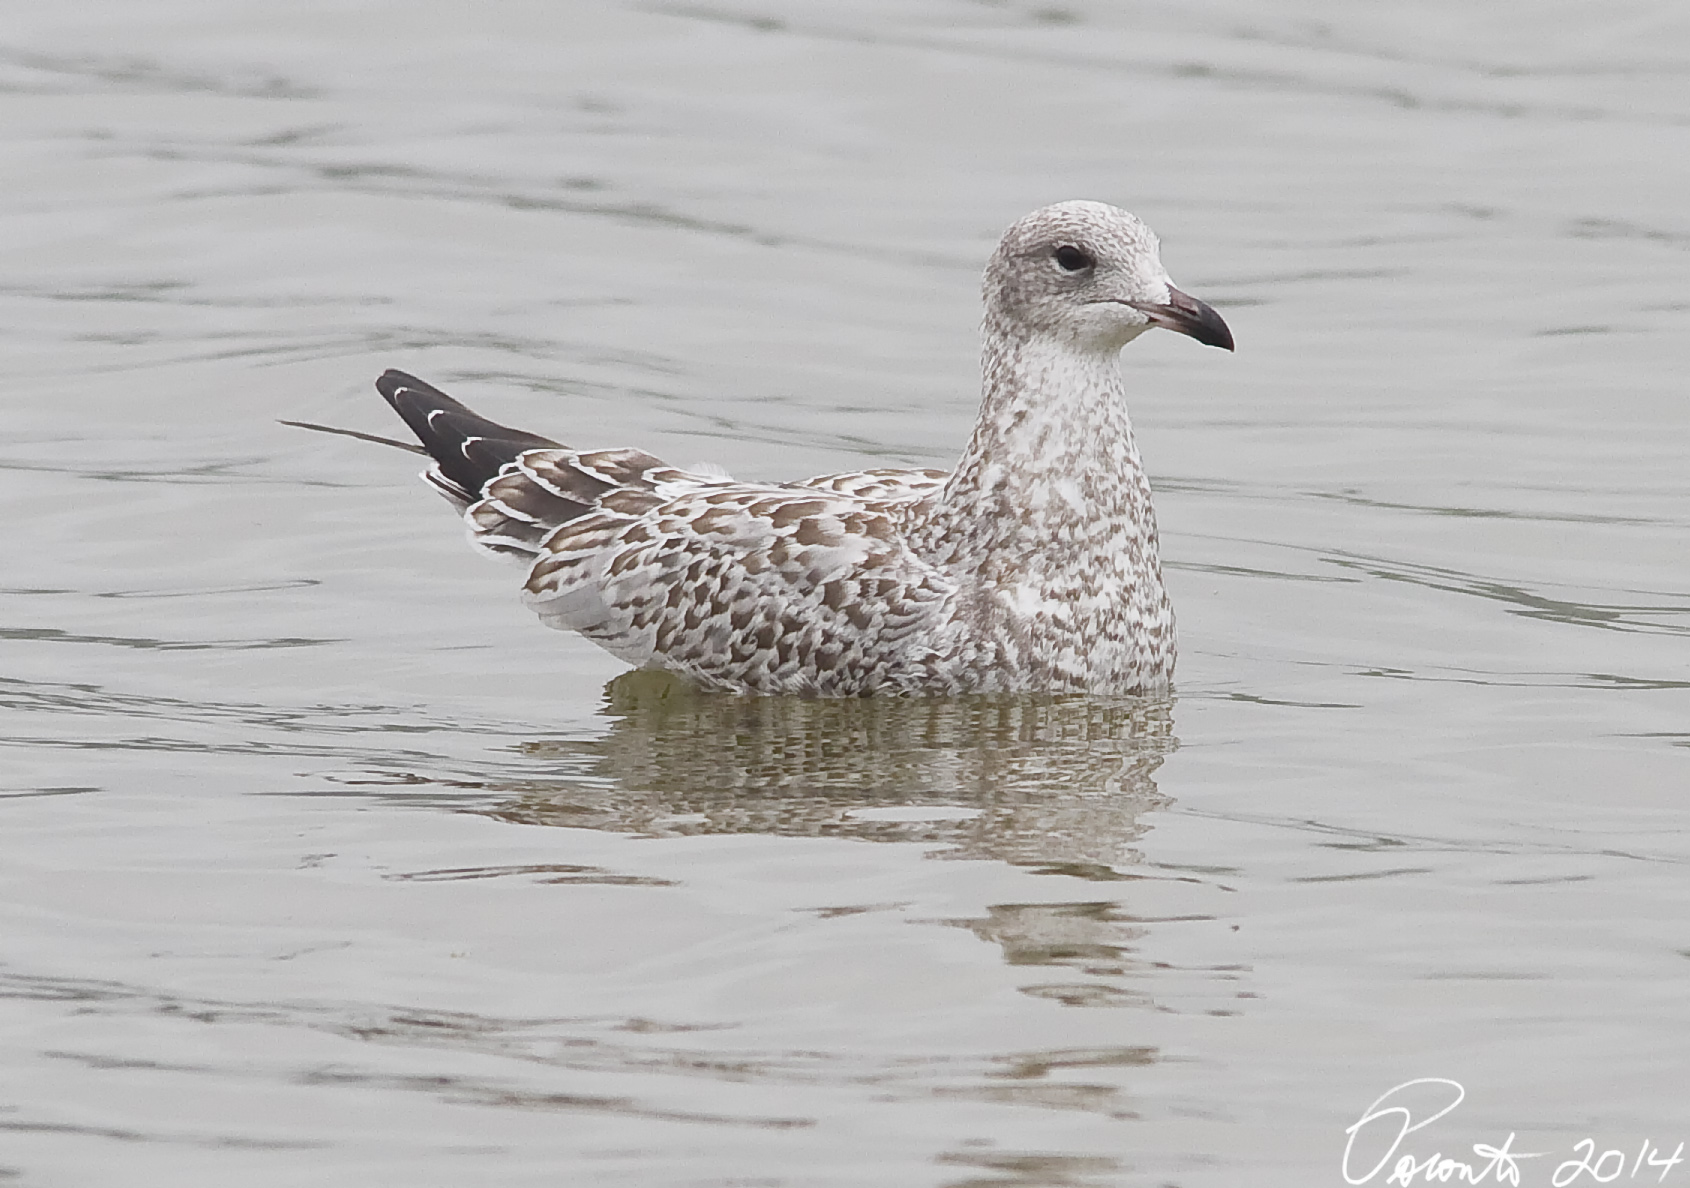 First Cycle Ring-billed Gull - mostly worn juvenal plumage